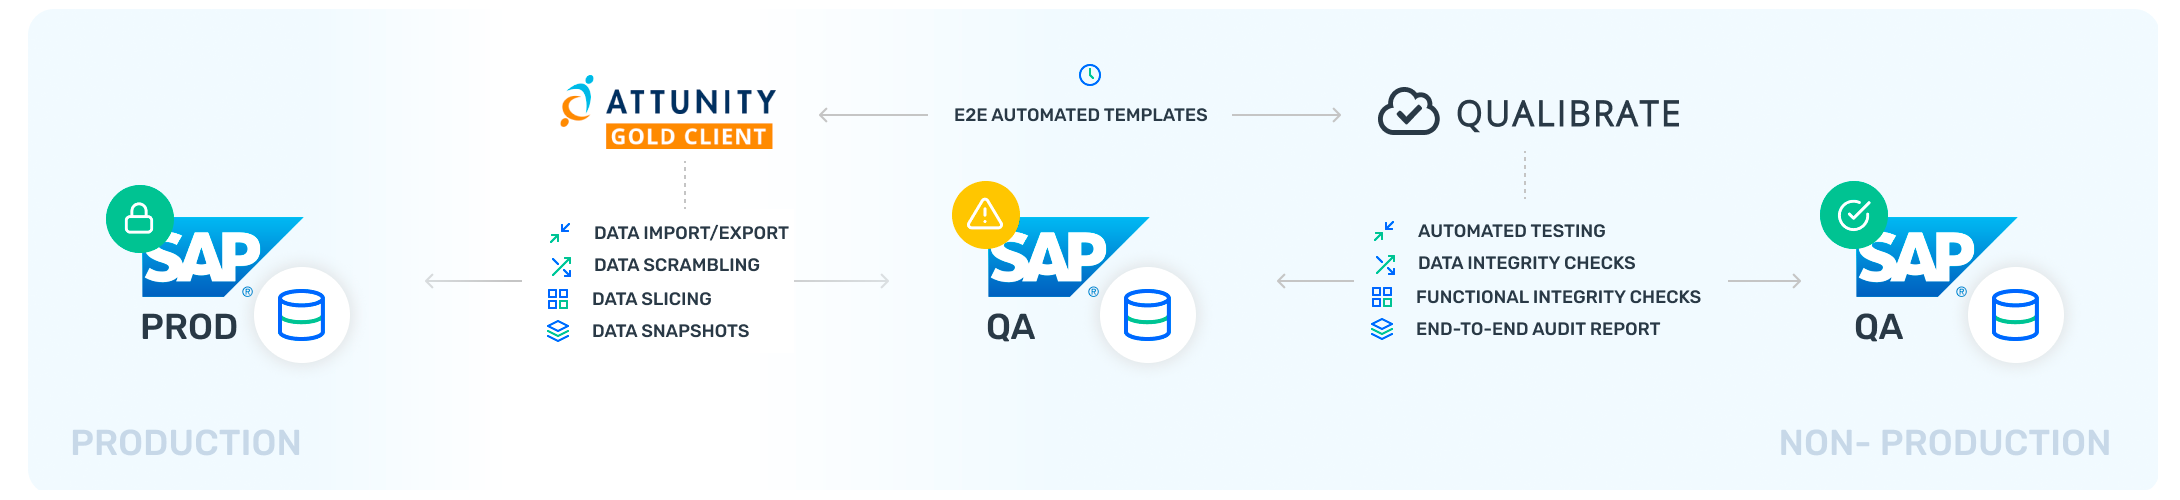 Attunity & Qualibrate solution for SAP test data management